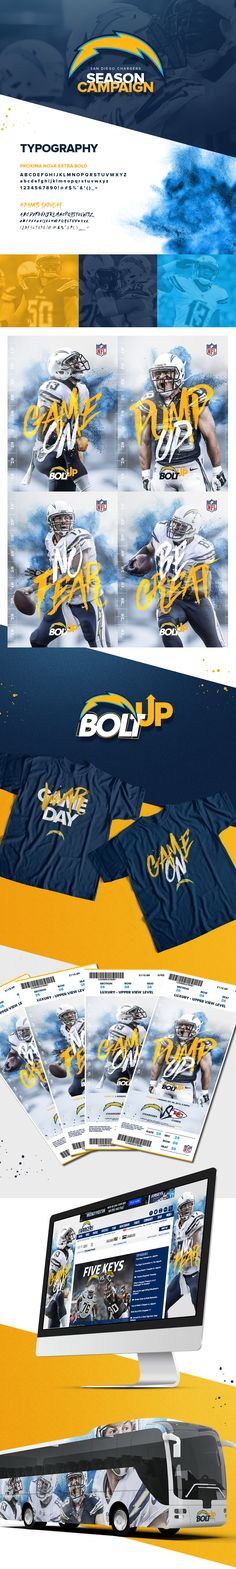 Fictitious campaign made for the Chargers, a NFL team from San Diego.